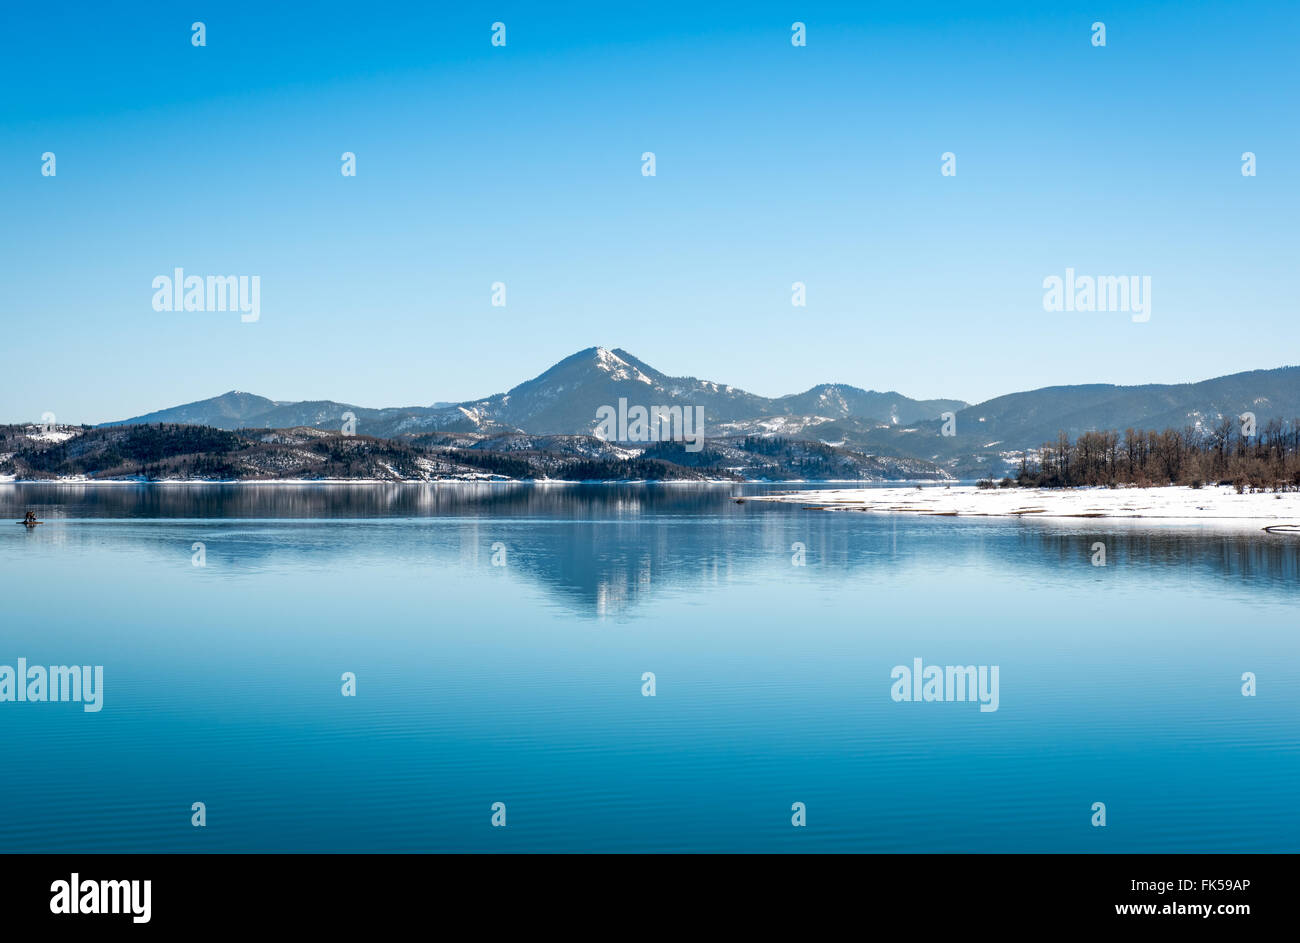 Lake Plastira on winter. Greece. Symmetric composition - Stock Image